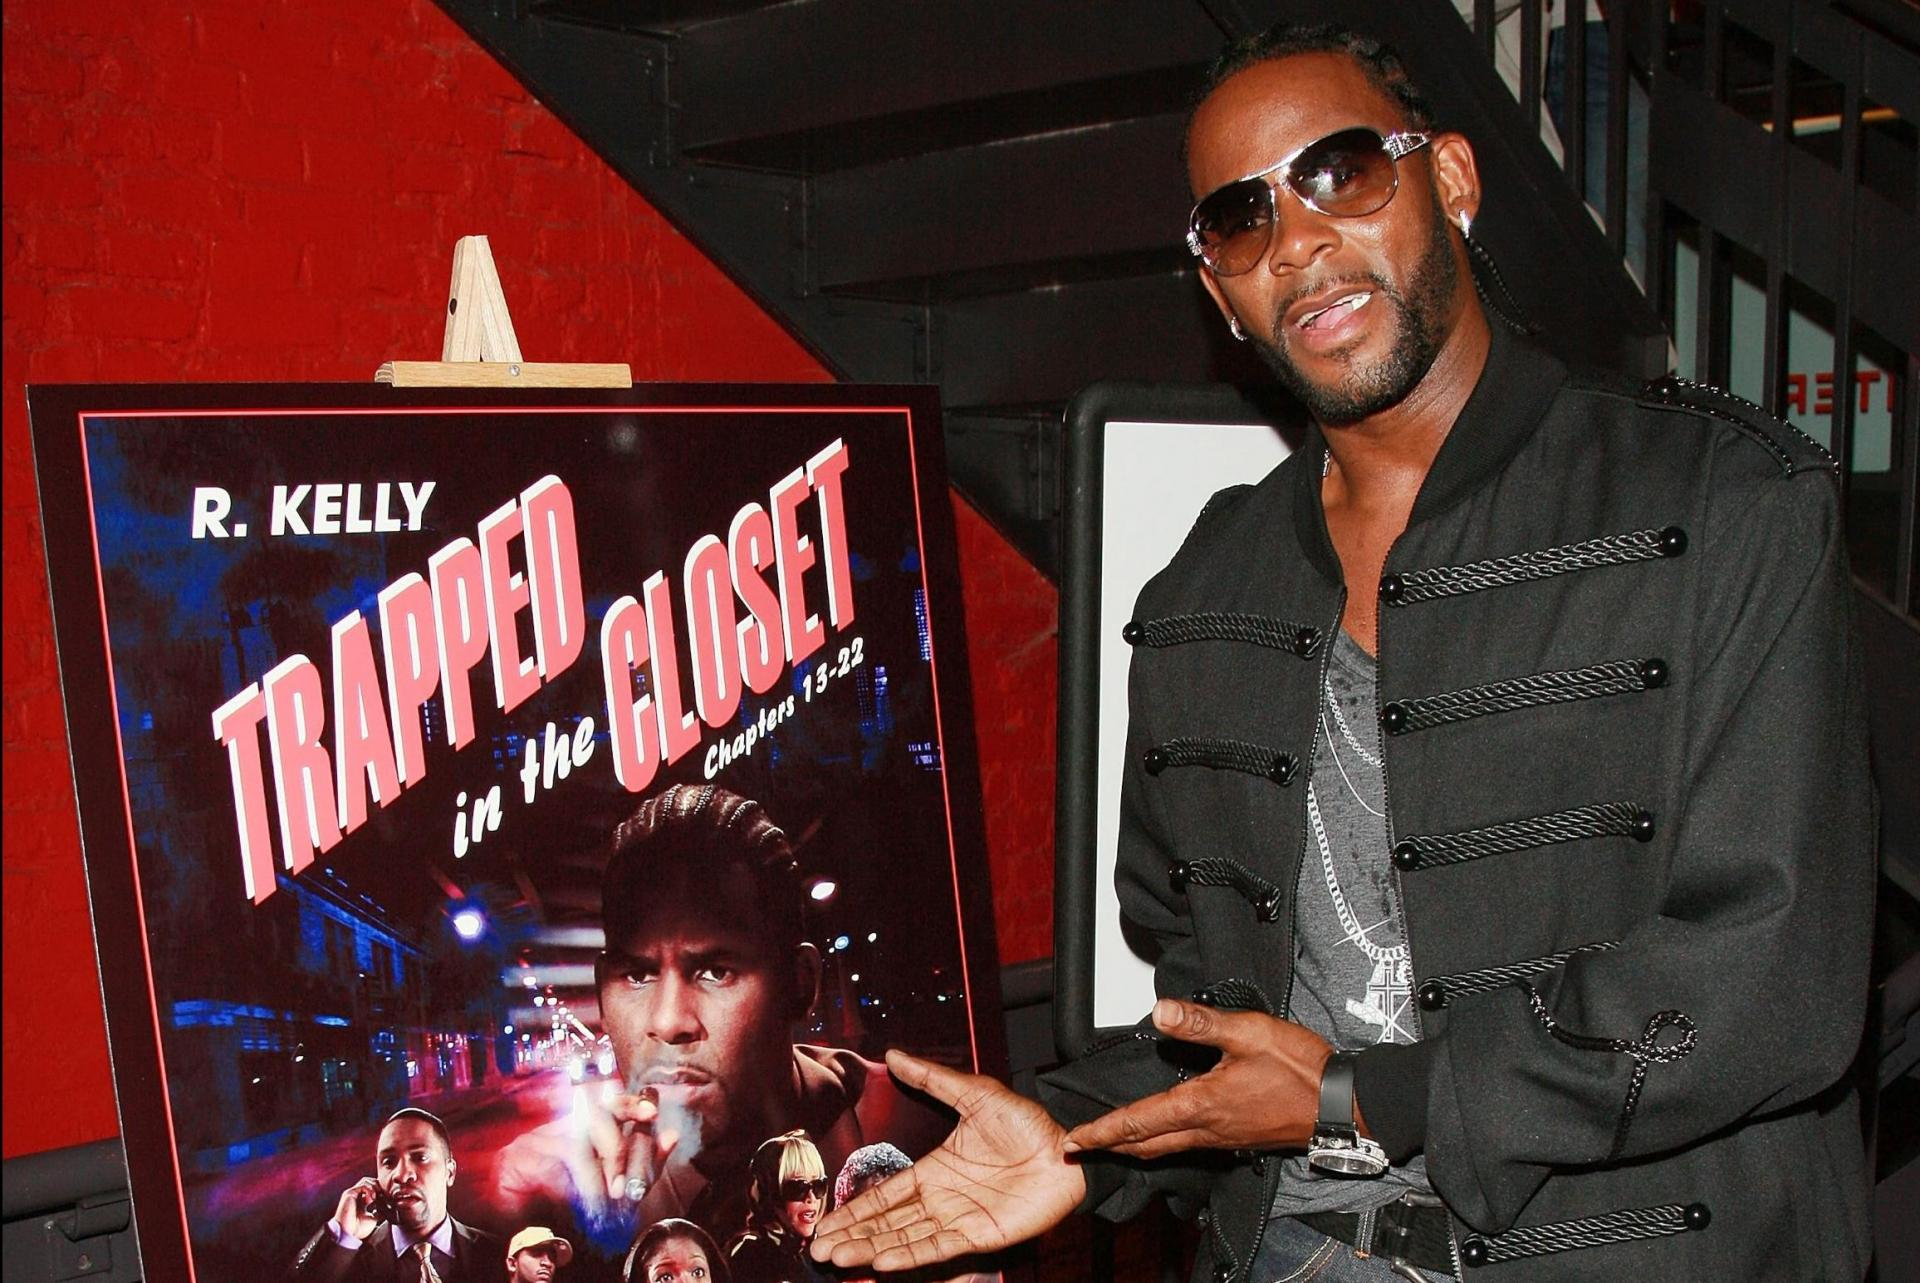 R. Kelly attends the premiere of Chapters 13-22 of his hip-hop opera 'Trapped in The Closet' at the IFC Center, August 15, 2007, in New York City. Photo: Evan Agostini/Getty Images North America/Getty Images via AFP